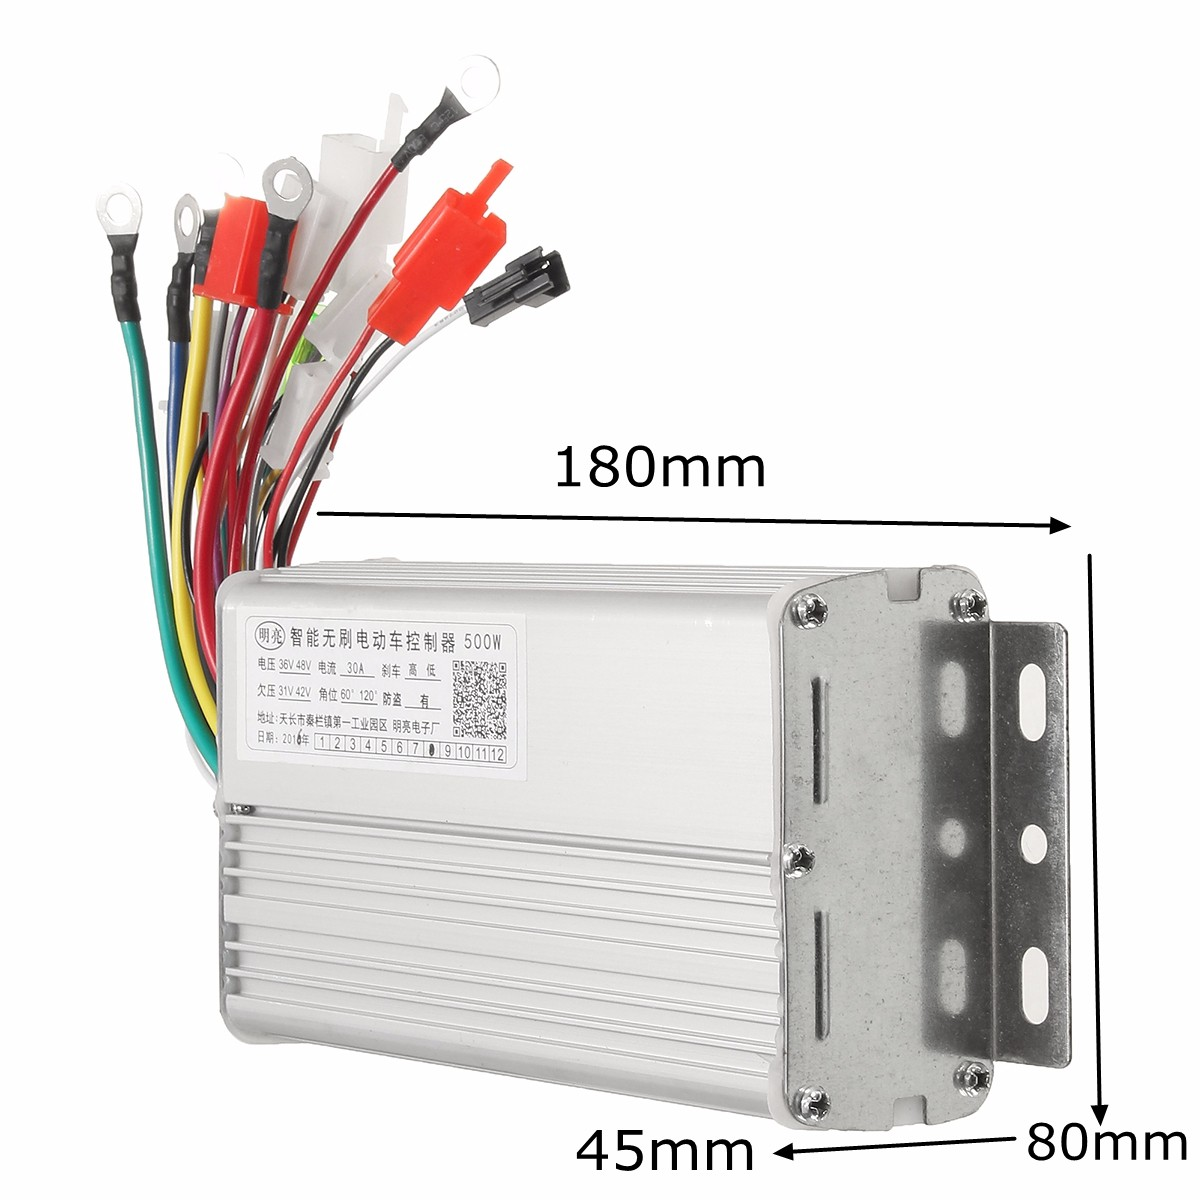 48v 500w 30a Brushless Motor Controller For Electric Scooters Bike Motors Wiring In Parallel